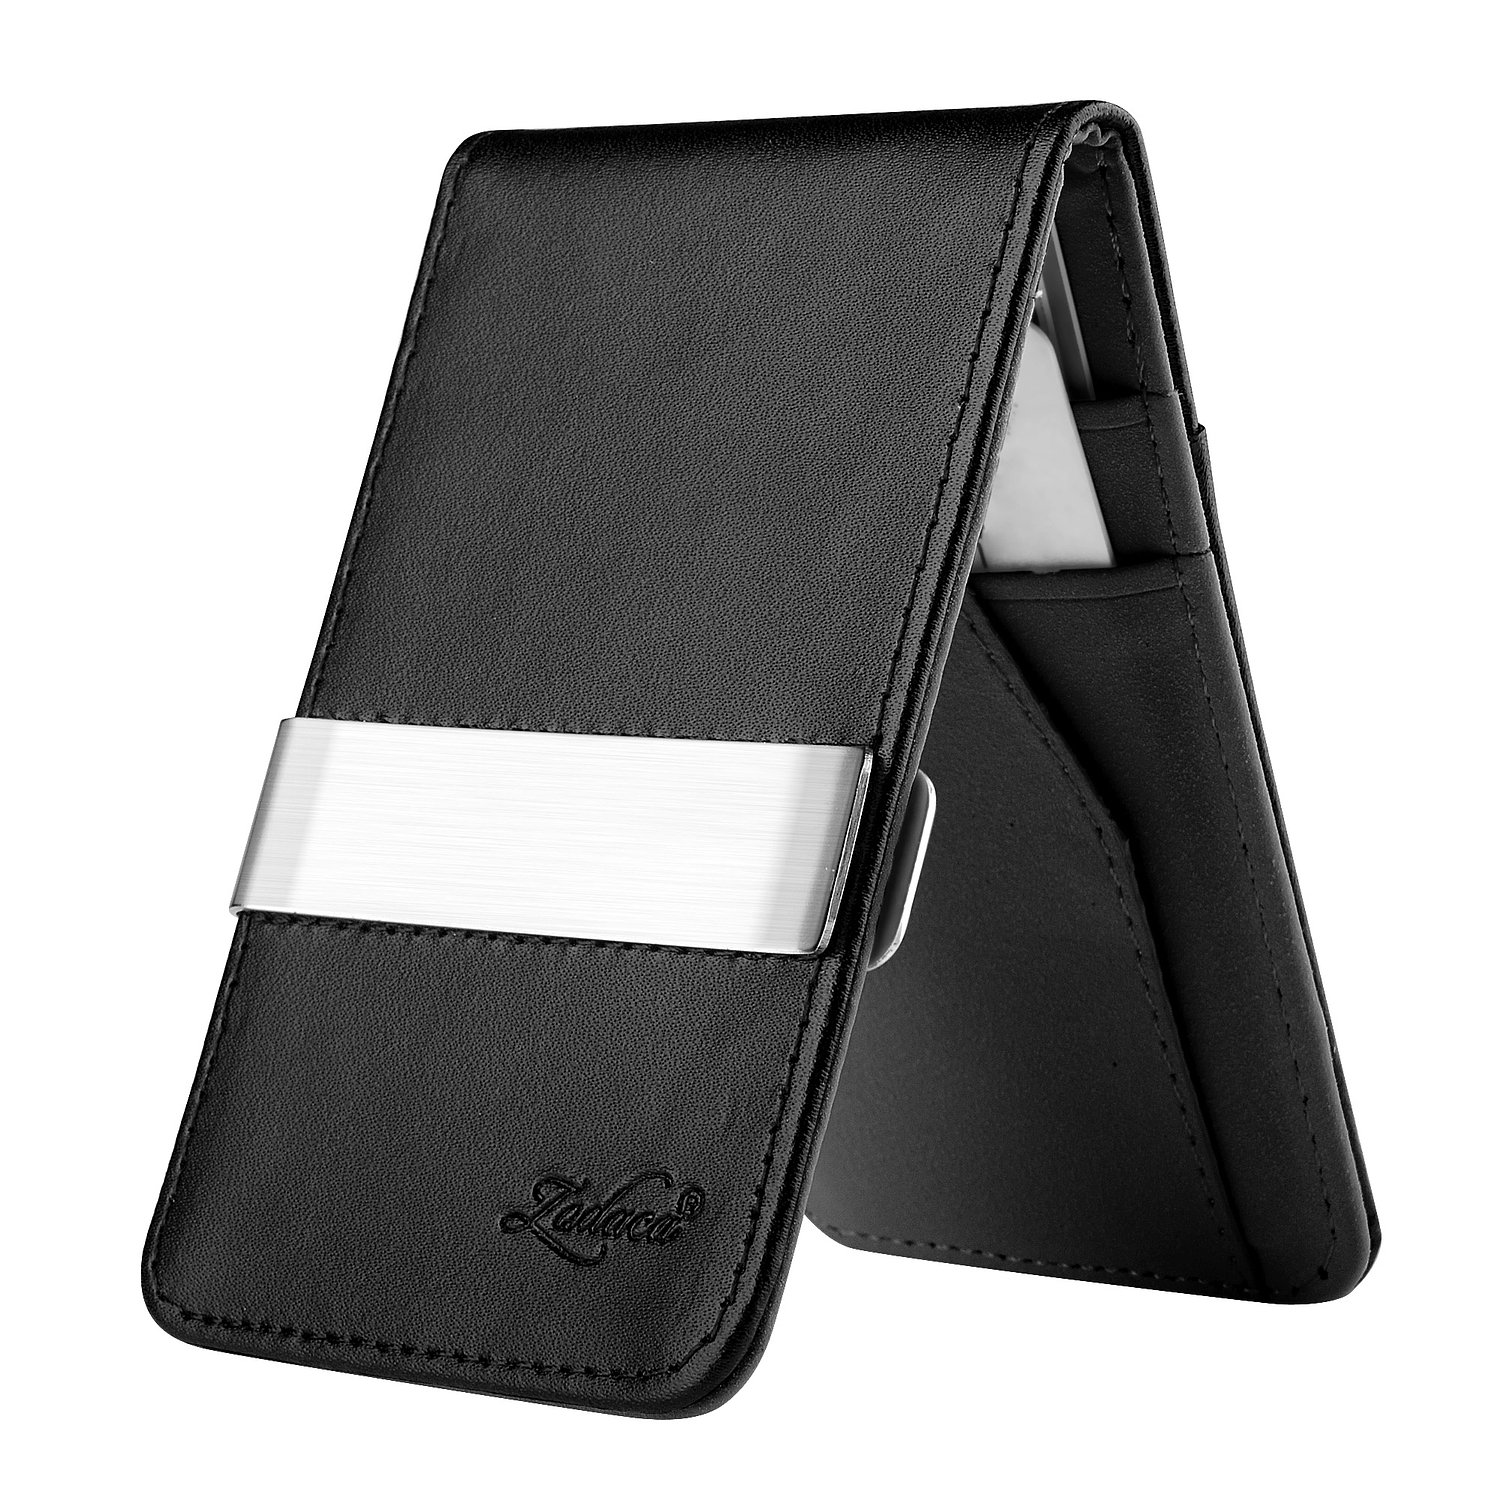 Zodaca genuine leather business card holder expandable zodaca horizontal genuine leather money clip wallet pvc detachable card holder magicingreecefo Choice Image